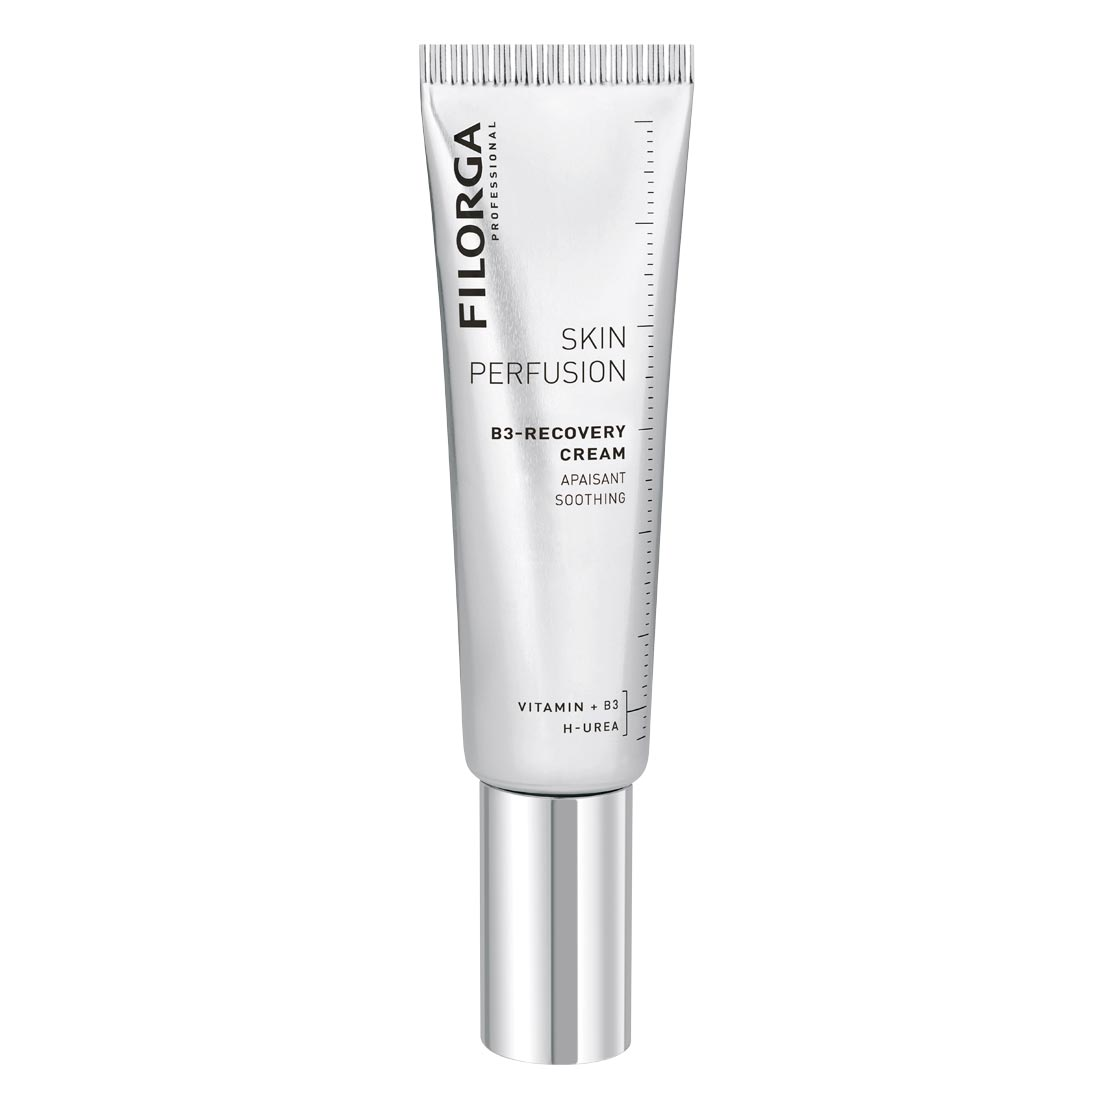 SKIN PERFUSION B3-RECOVERY CREAM 1